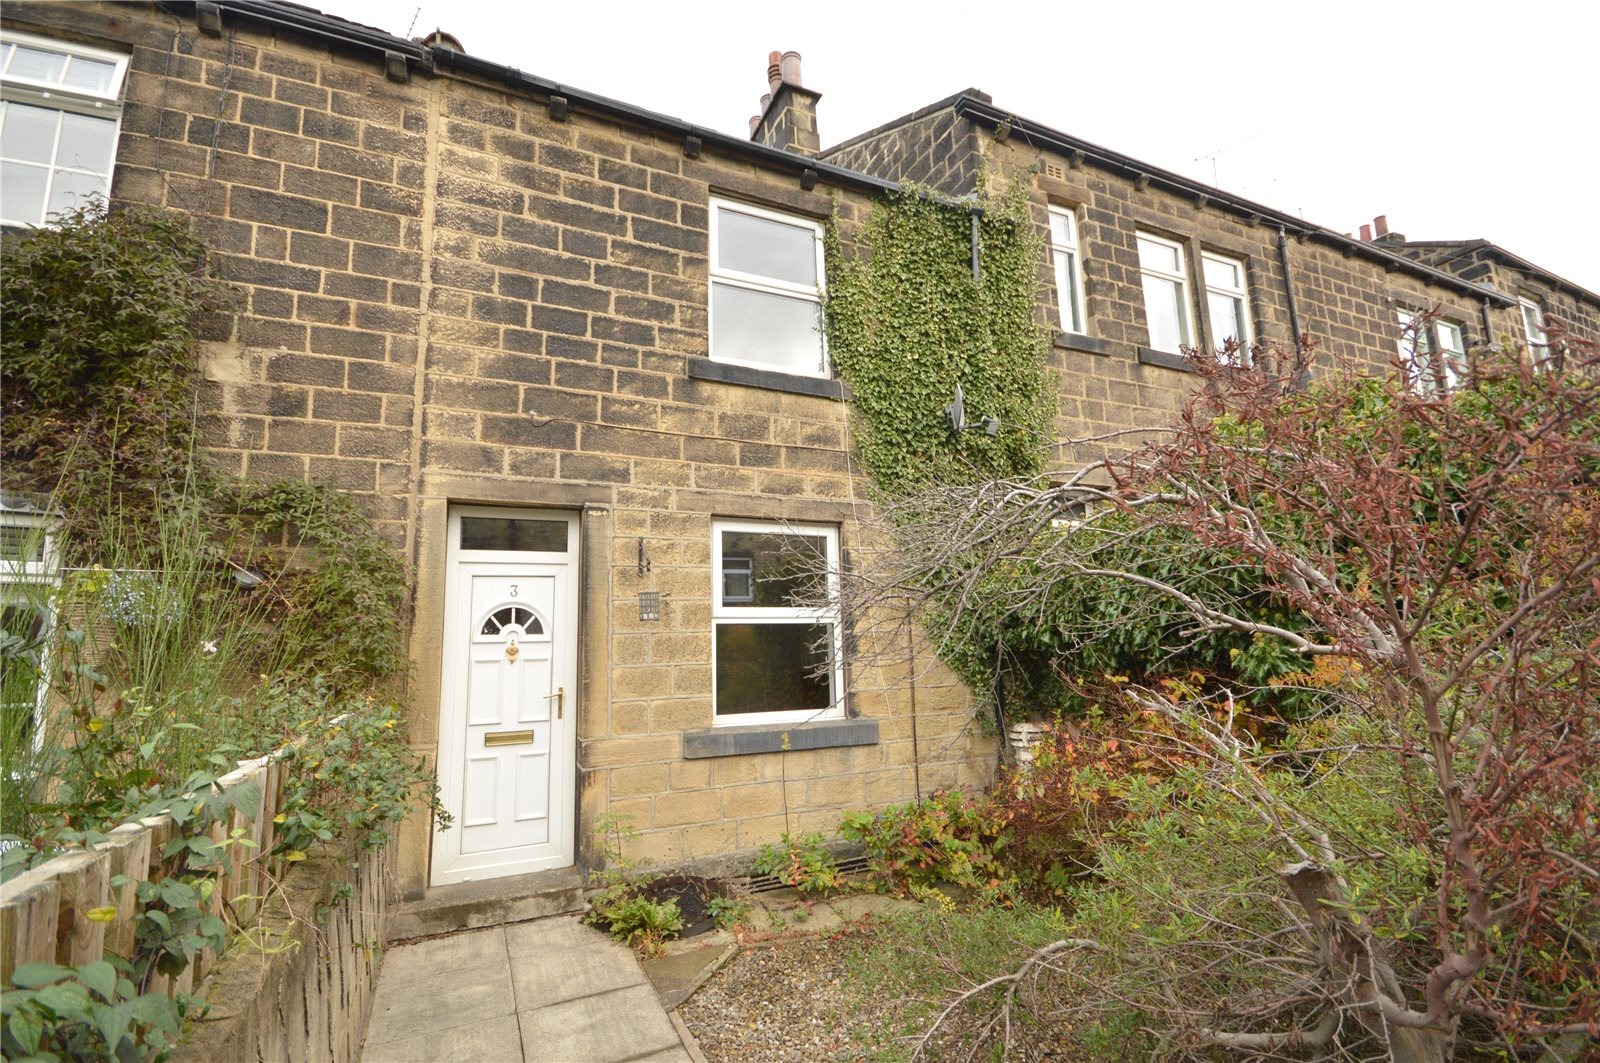 Property for sale in Rawdon, exterior terraced stone house